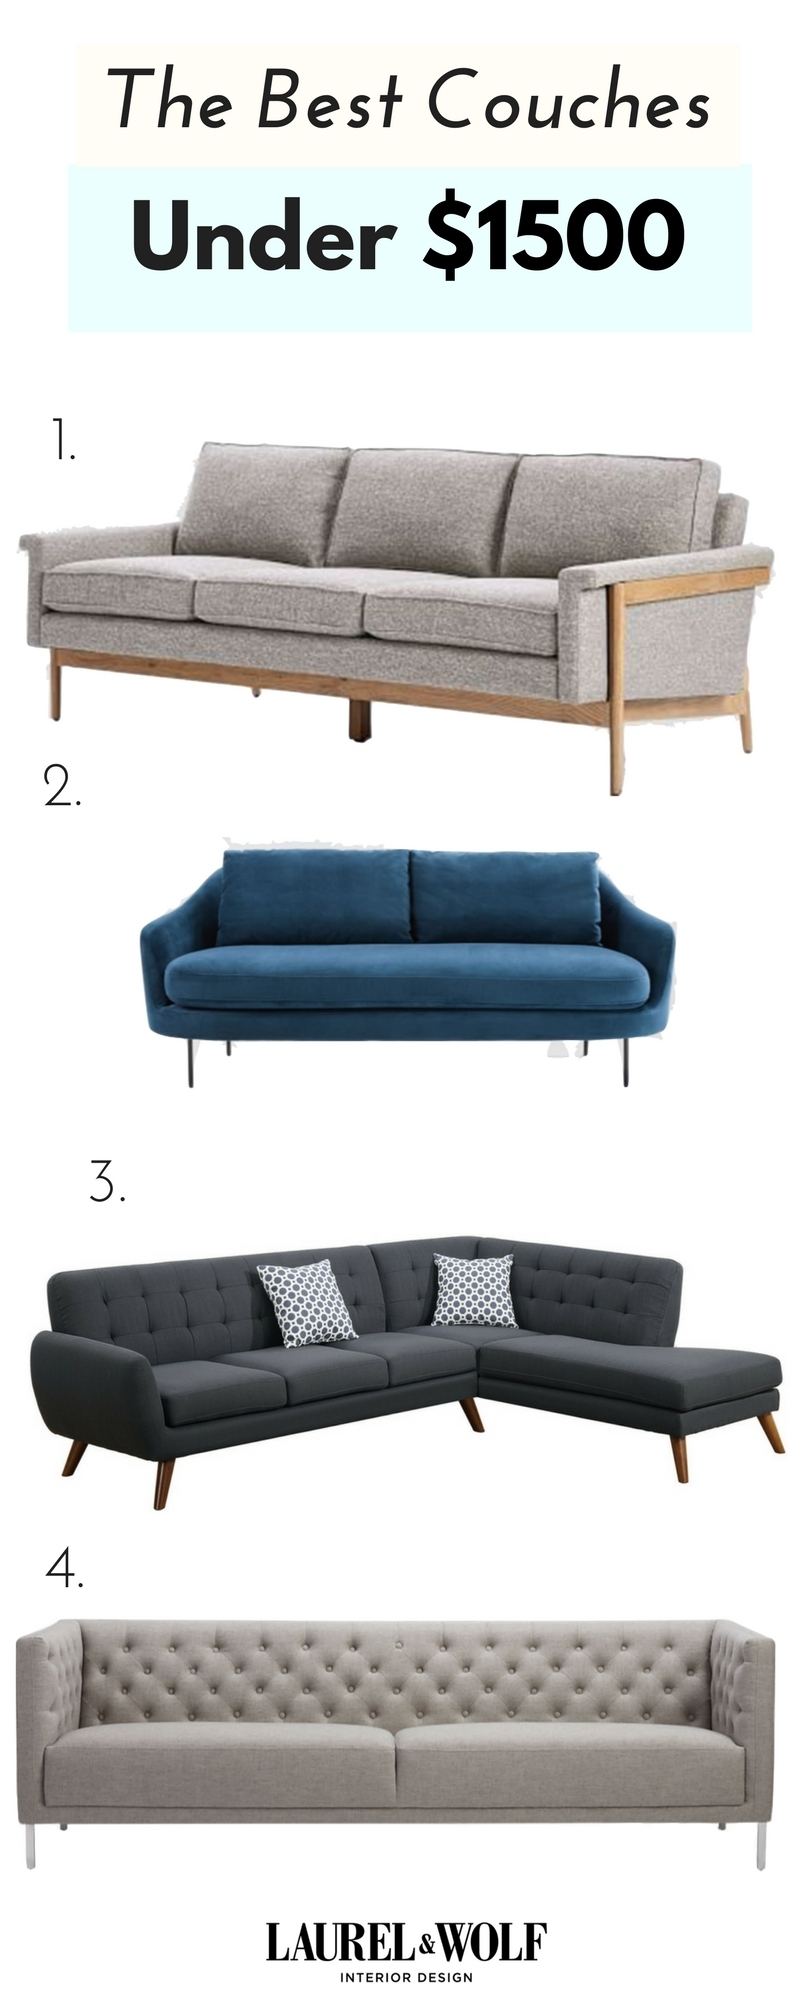 You Don't Need A $10K Couch To Netflix & Chill. From Sectionals To Pertaining To Sectional Sofas Under 1500 (Gallery 1 of 10)